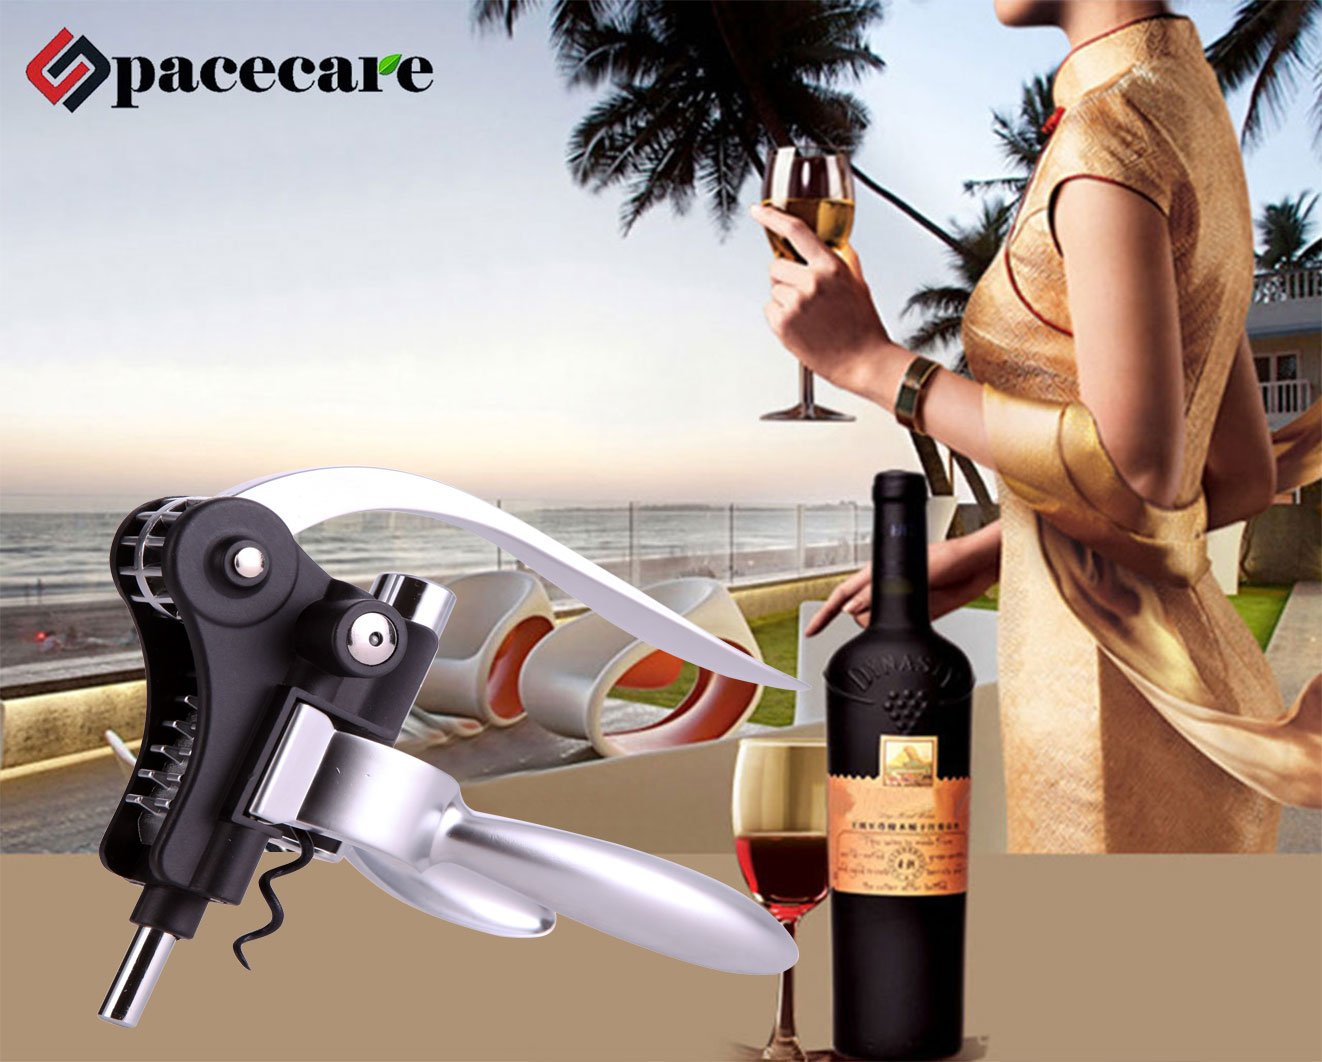 SPACECARE Wine Opener Kit with Chess,Red Wine Beer Bottle Opener Wing Corkscrew,Aerator, Thermometer, Stopper, and Accessories Set with Dark Cherry Wood Case - 10 Piece by SPACECARE (Image #6)